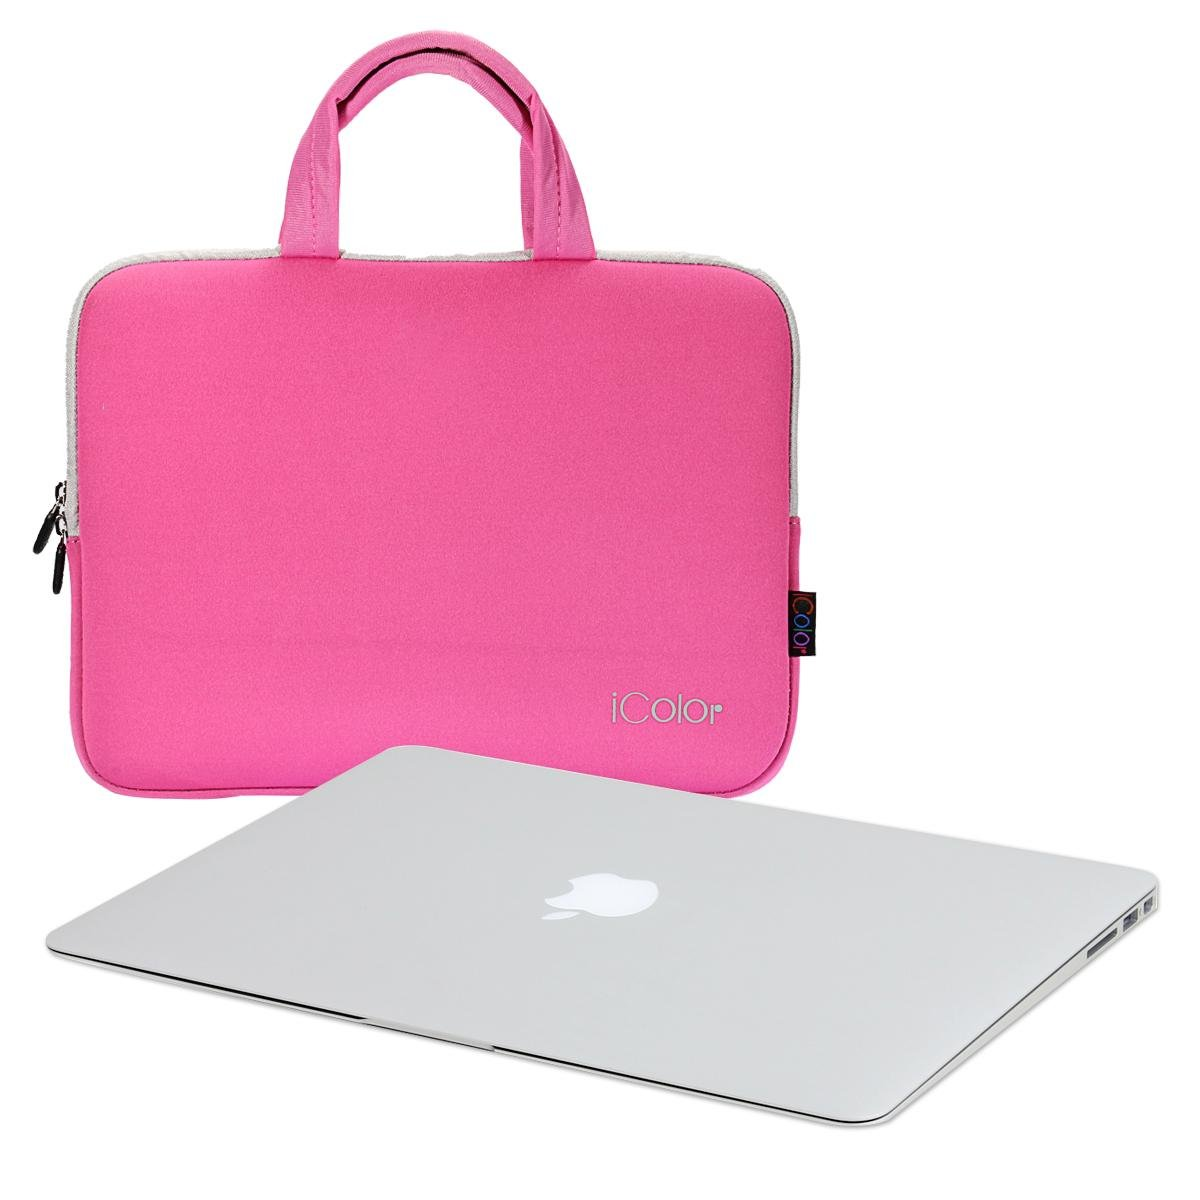 ASUS 16.5 17 17.3 Laptop PC IHB17-10 Dell HP iColor Starfish 16 16.5 17 17.3 Netbook // Laptop Ultra-Portable Neoprene Sleeve Carrying Case Briefcase Handle Bag Pouch Tote for Apple MacBook Pro Toshiba Samsung Acer Lenovo